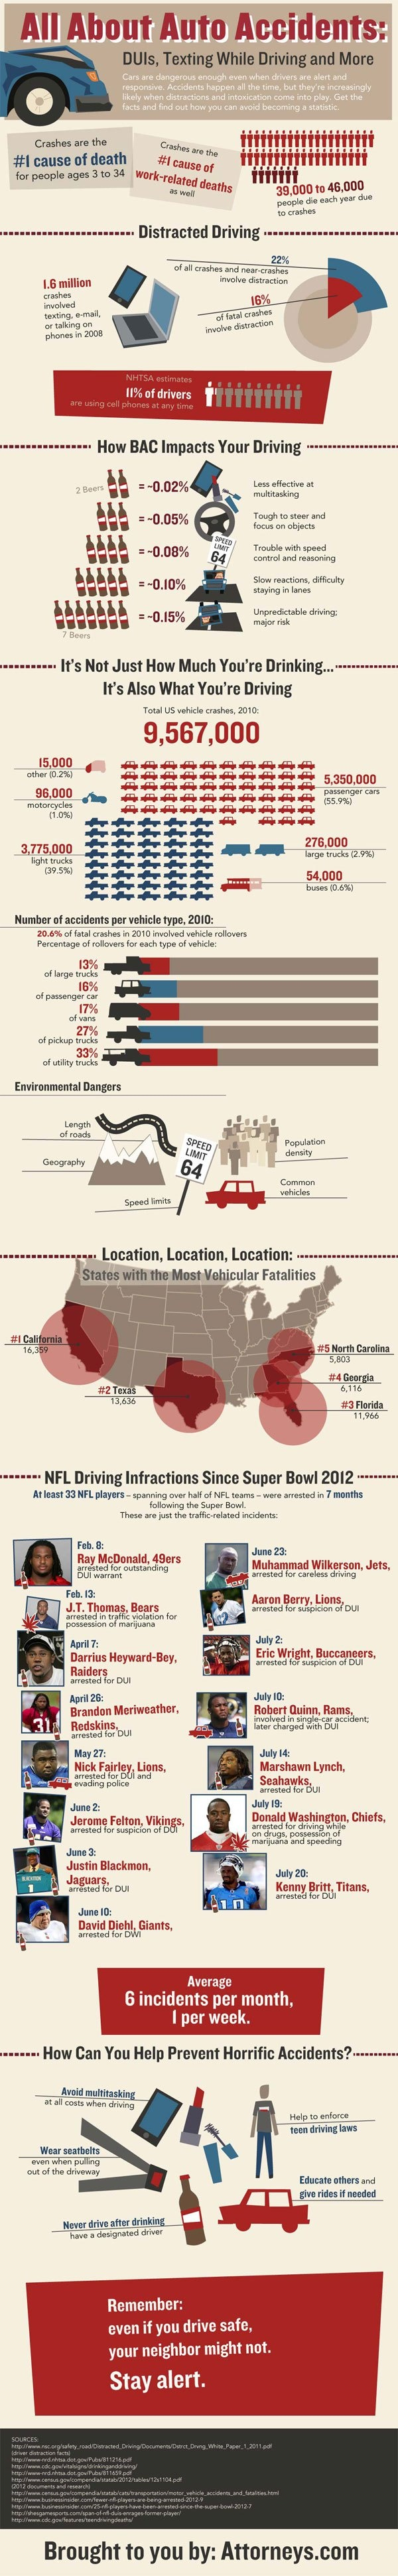 All About Auto Incidents: DUI, Texting While Driving and More[INFOGRAPHIC]